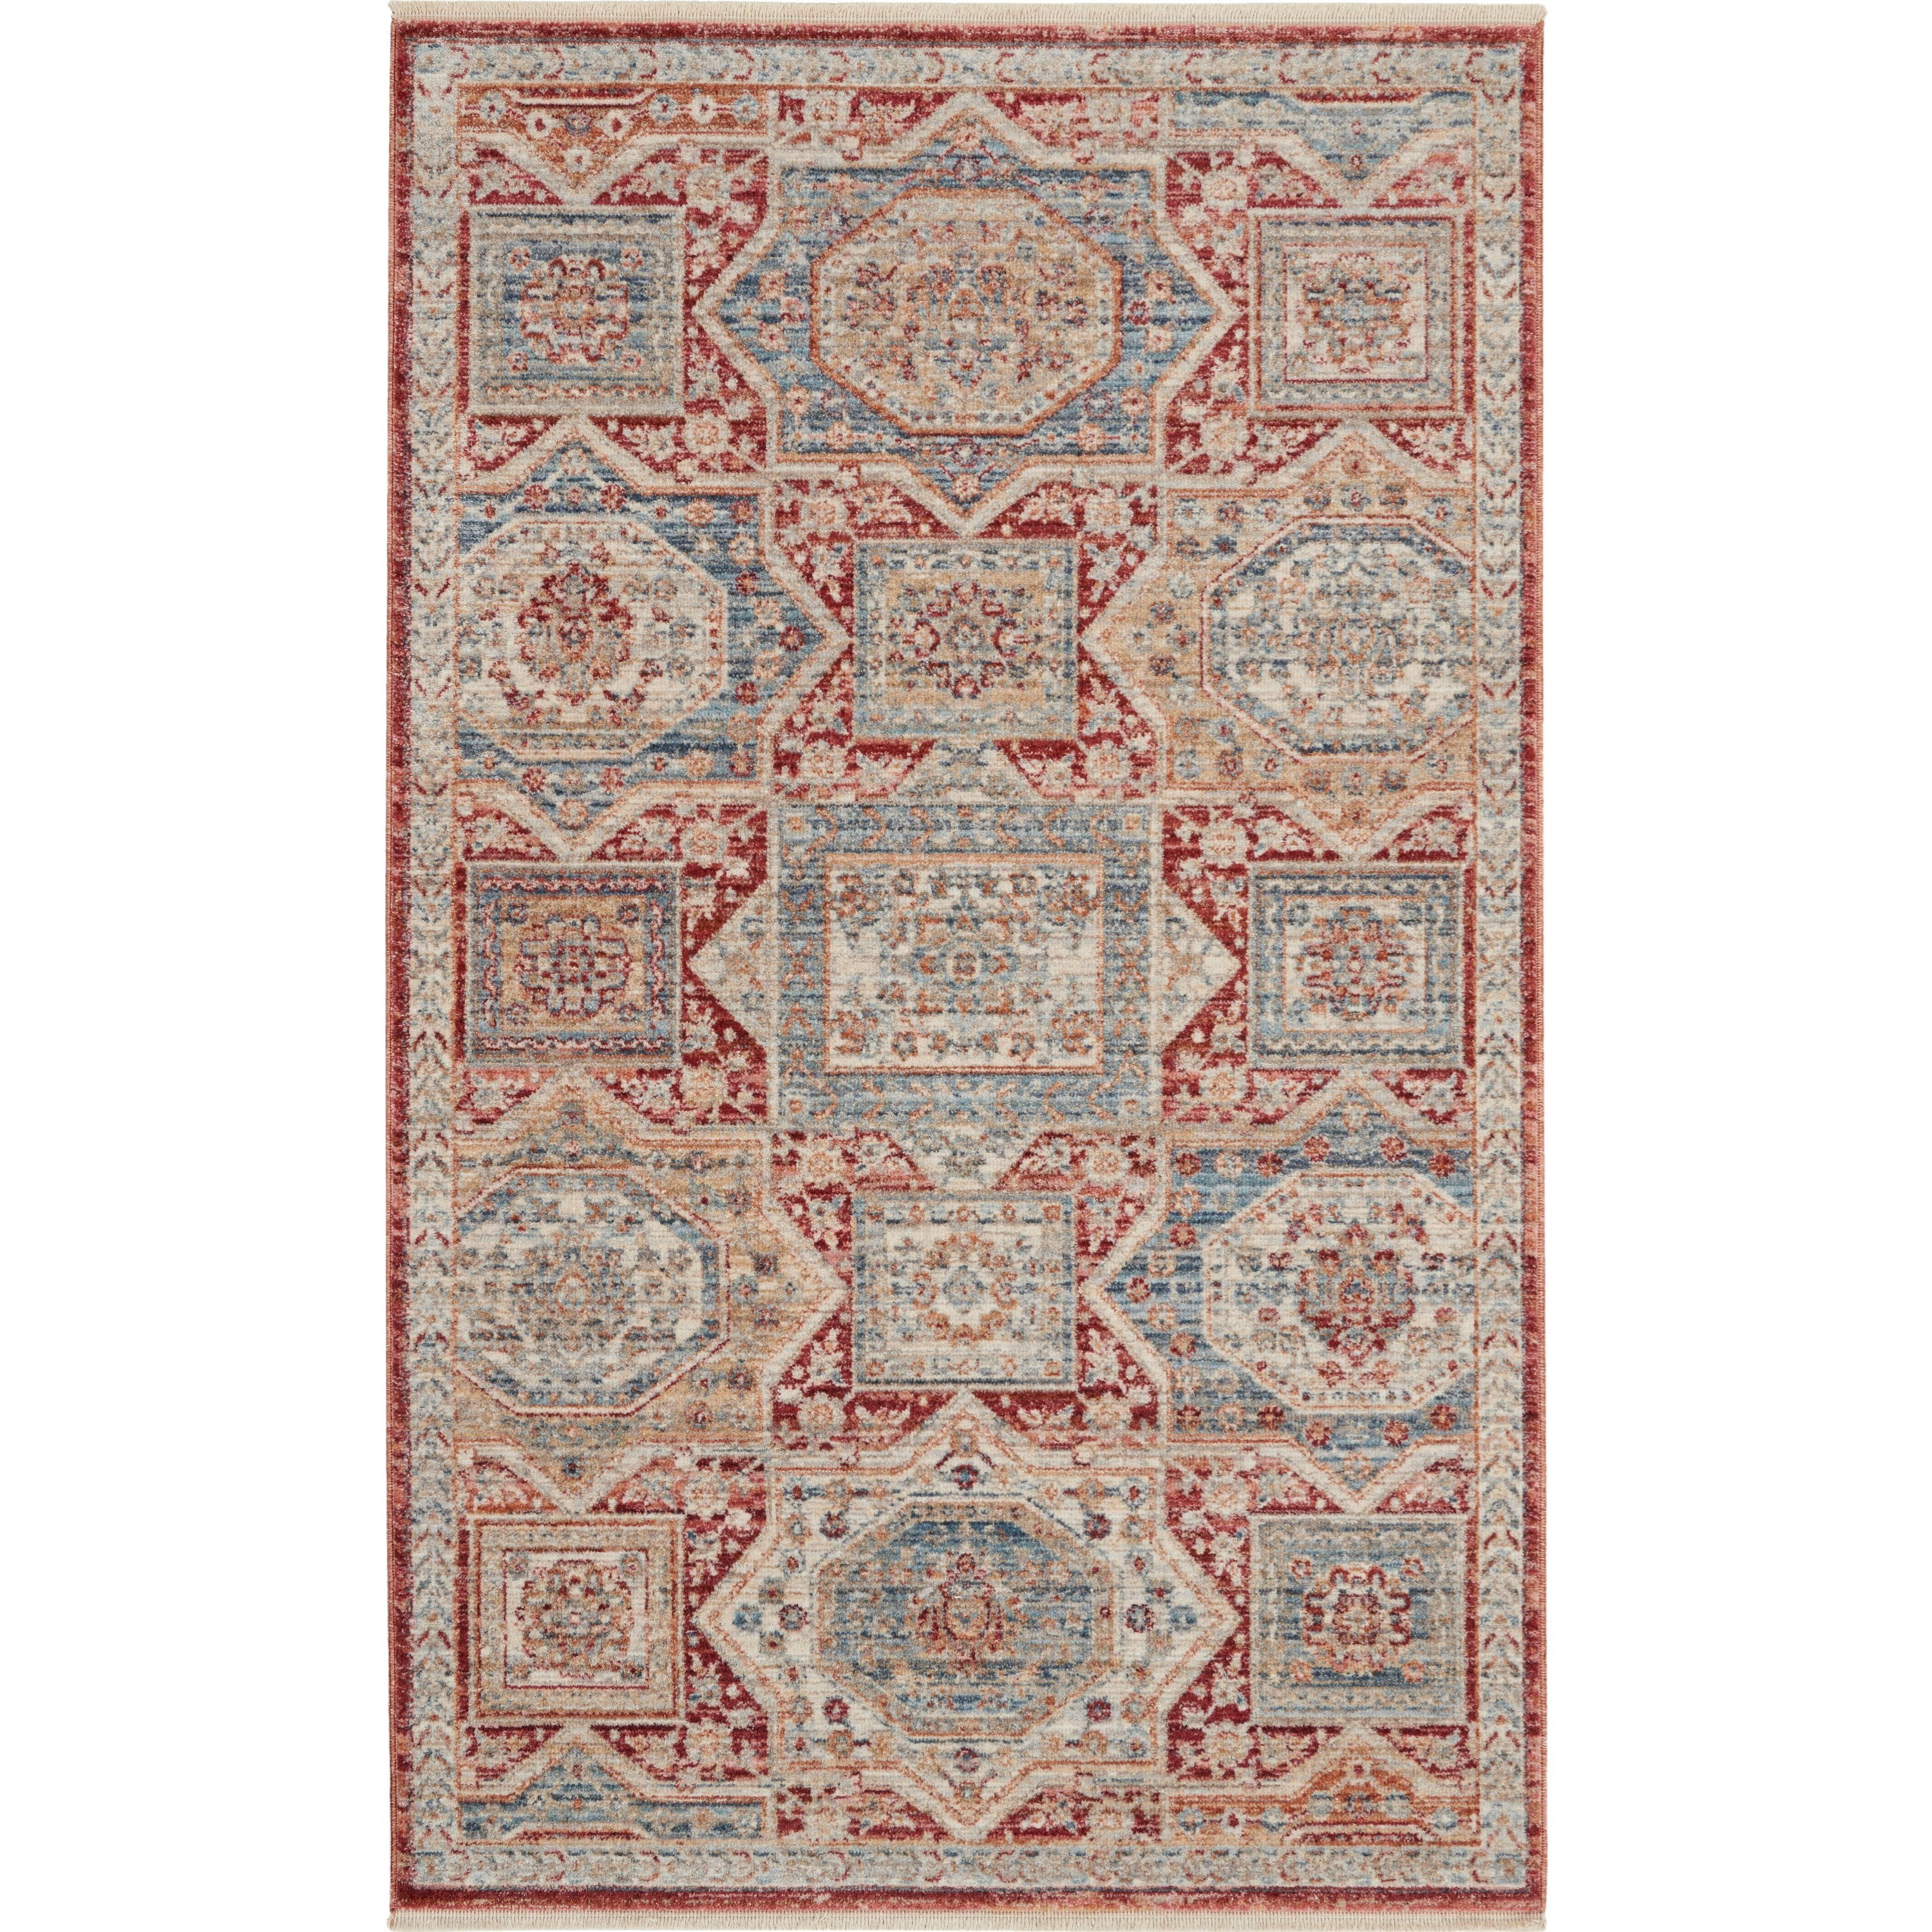 Homestead 2020 3' x 5' Rug by Nourison at Home Collections Furniture